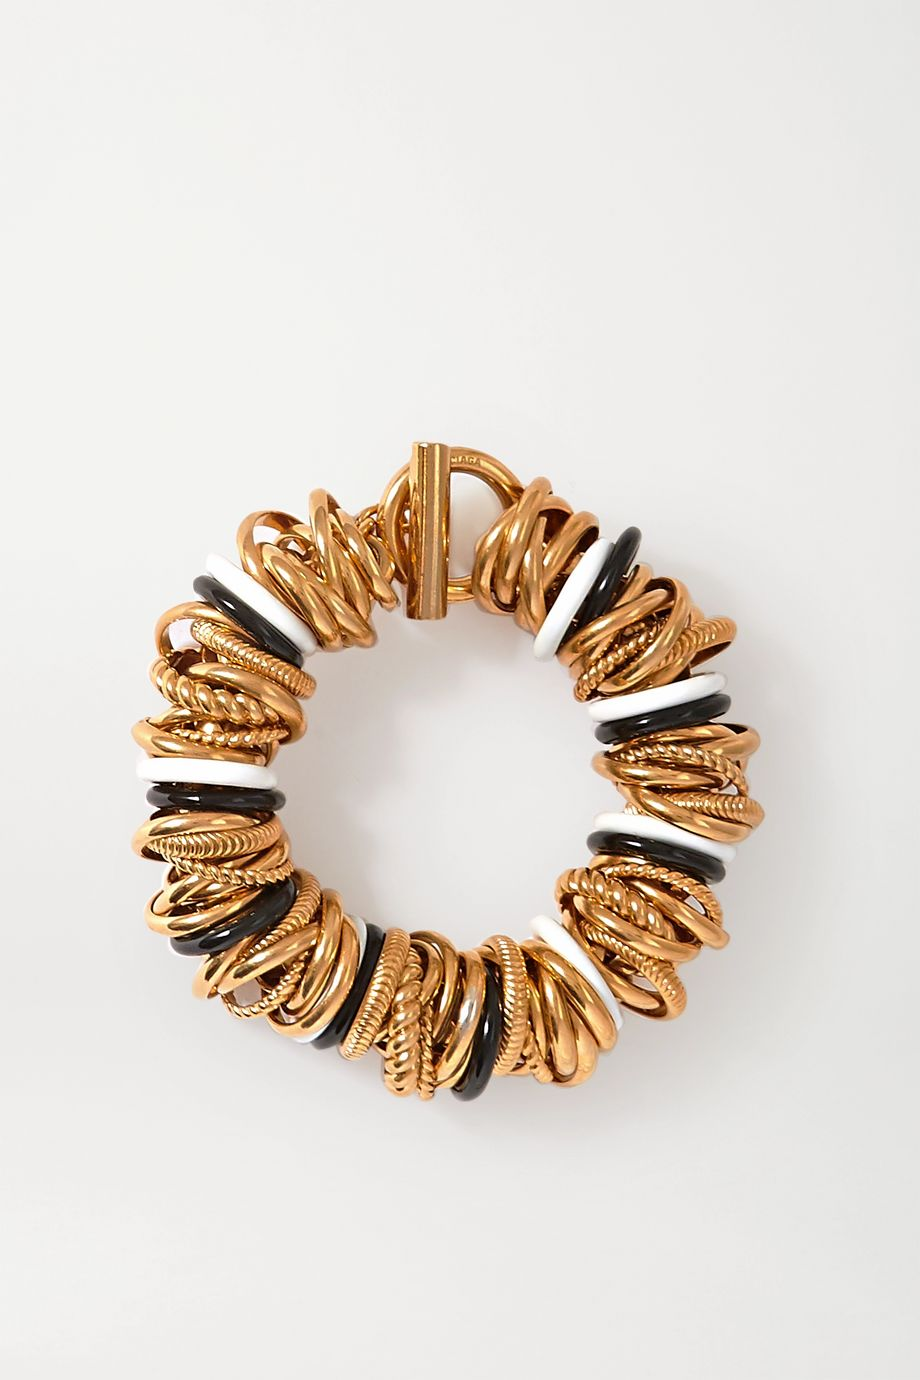 Balenciaga Gold-tone and enamel bracelet